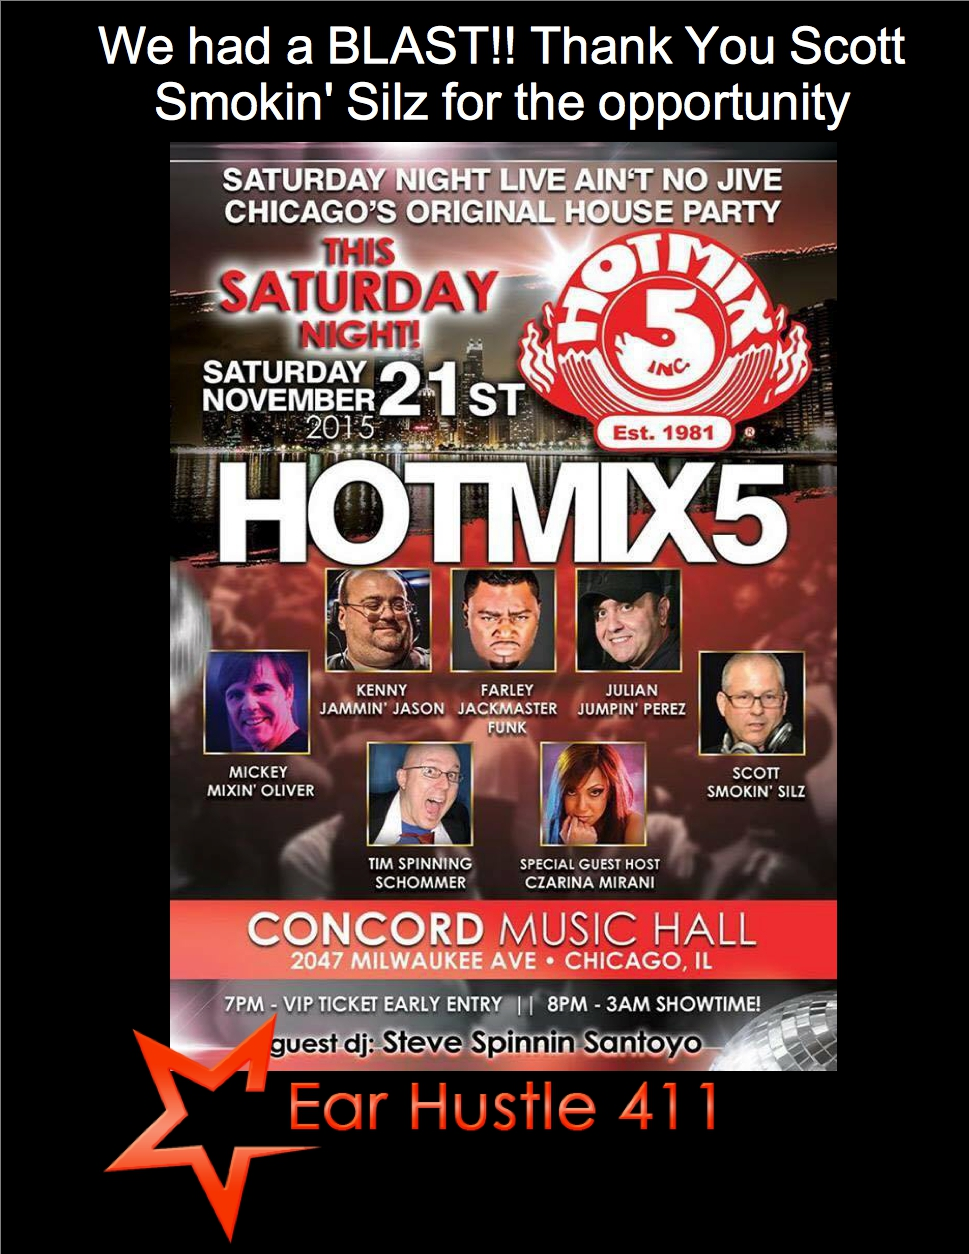 Hot mix 5 flyer